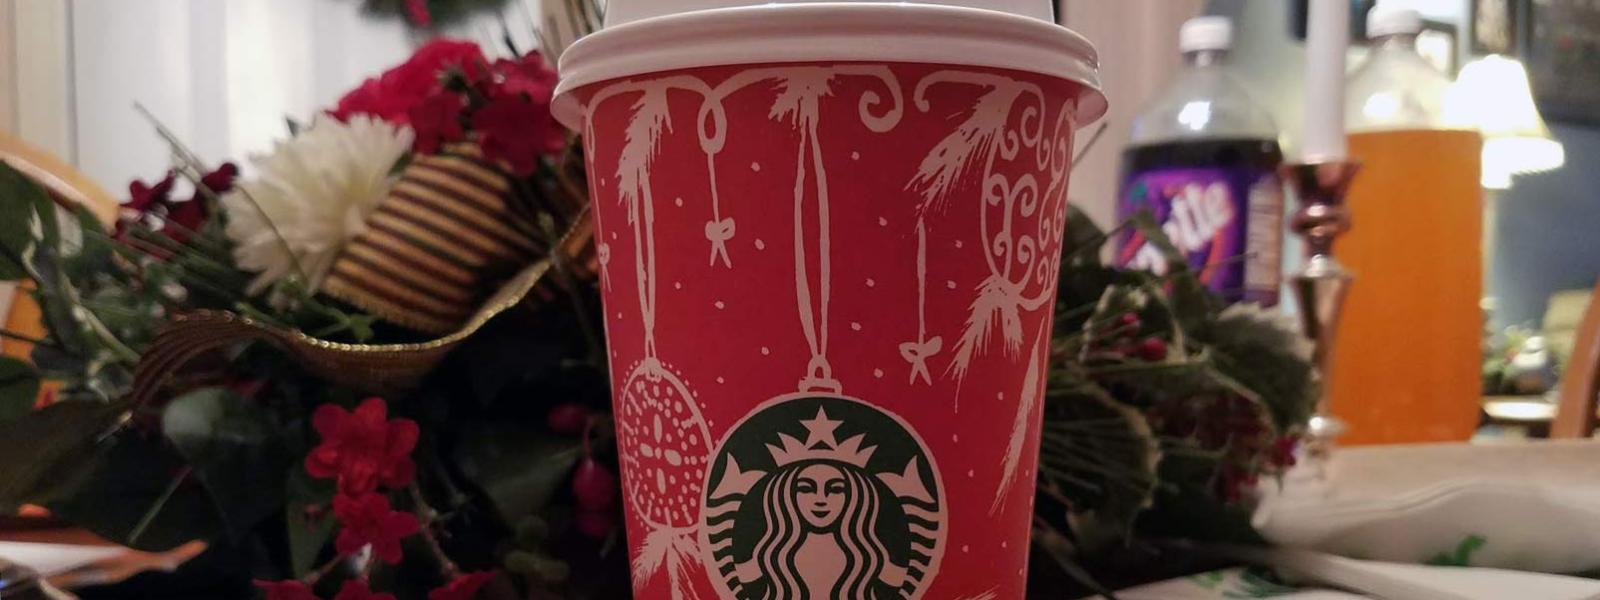 Starbucks Peppermint Hot Chocolate